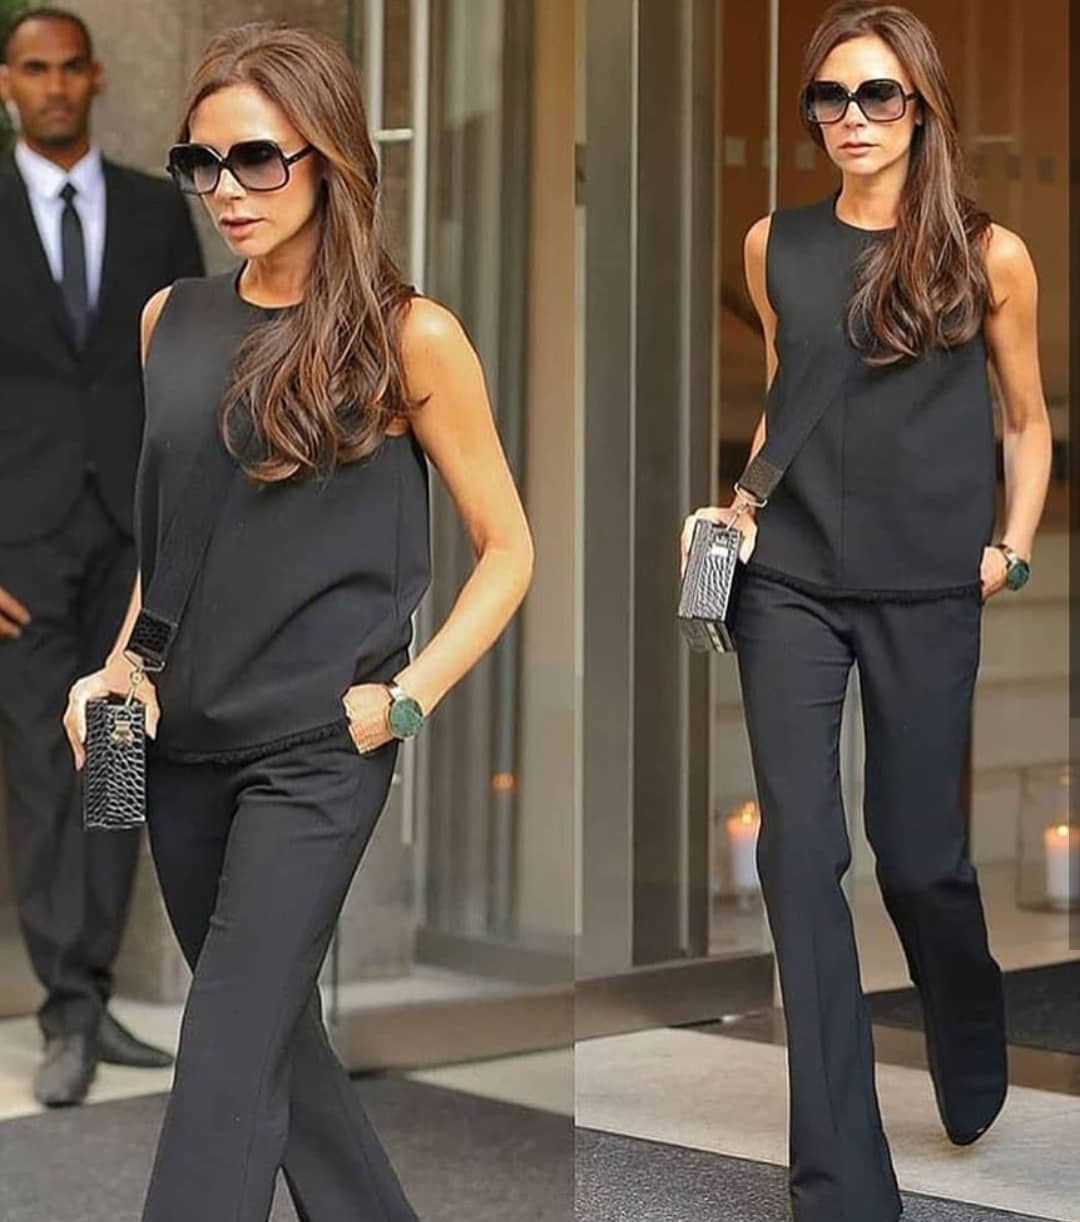 All In Black Outfit Idea: Sleeveless Top And Flared Pants With Oversized Shades 2020